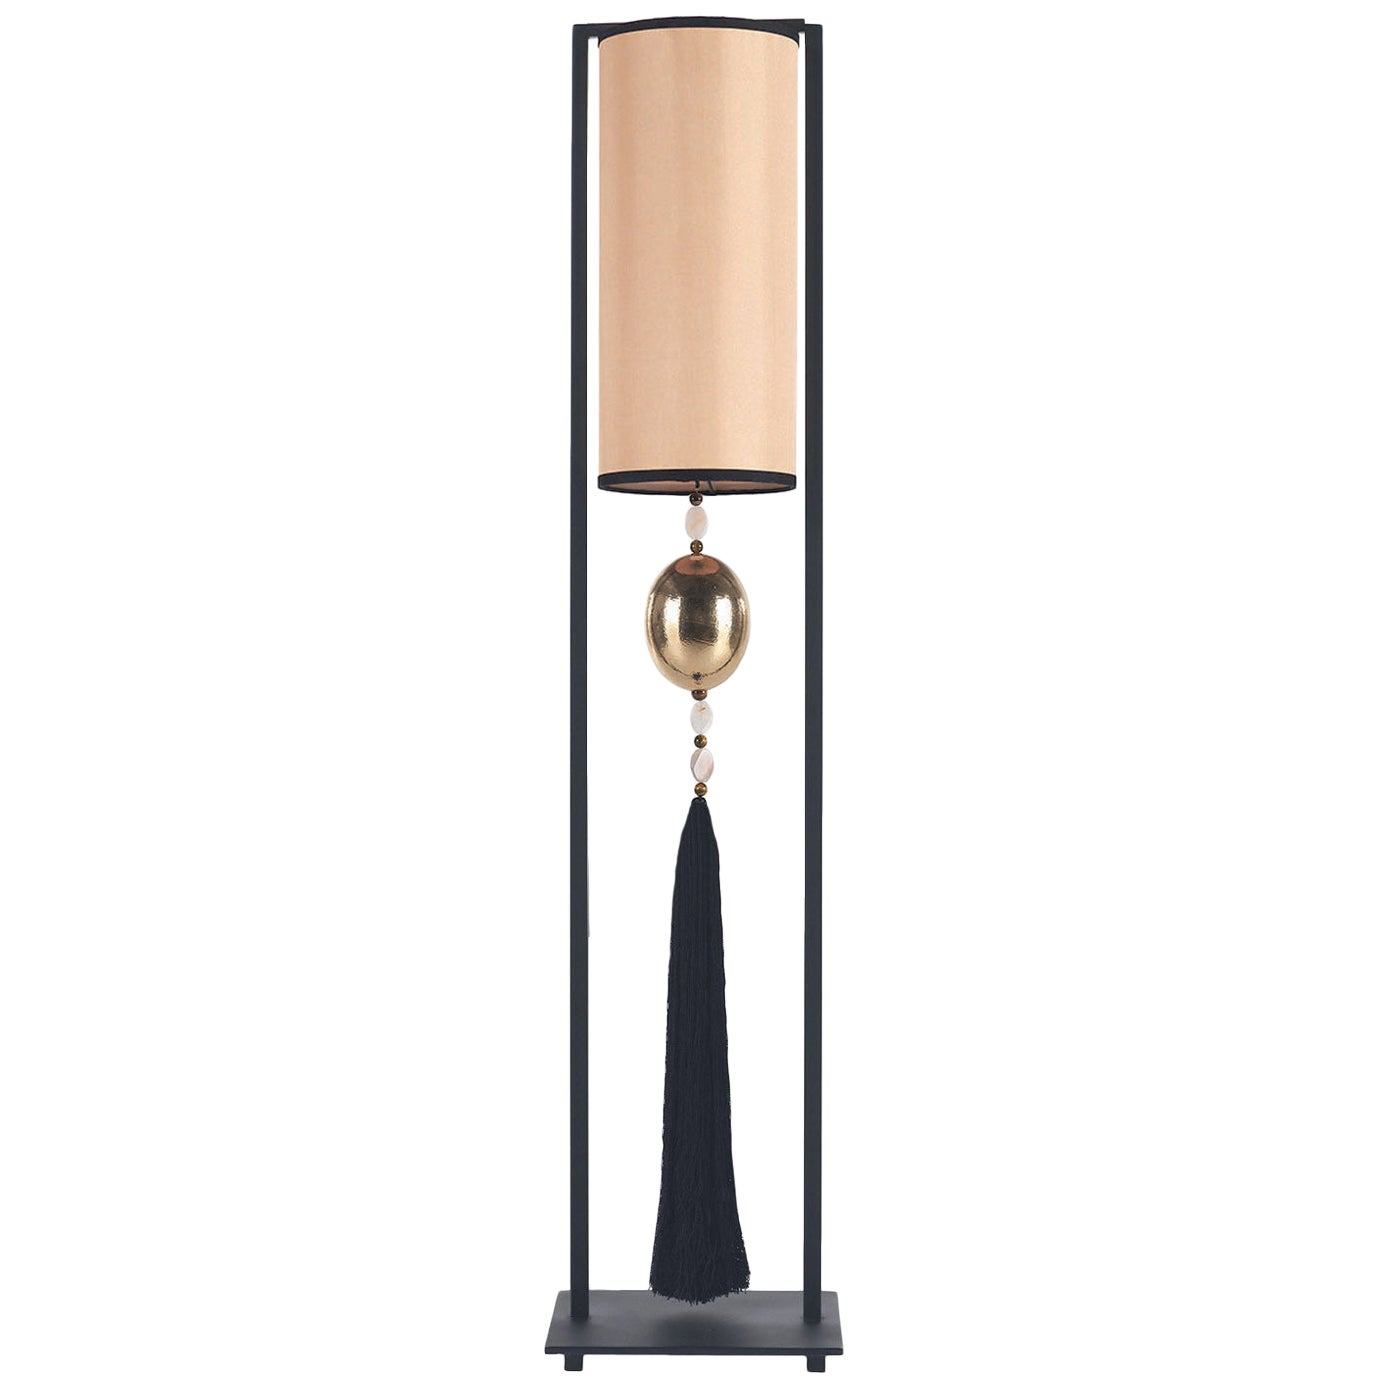 Gianfranco Ferré Home Brenda_2 Table Lamp in Matte Black Iron and Satin Shade